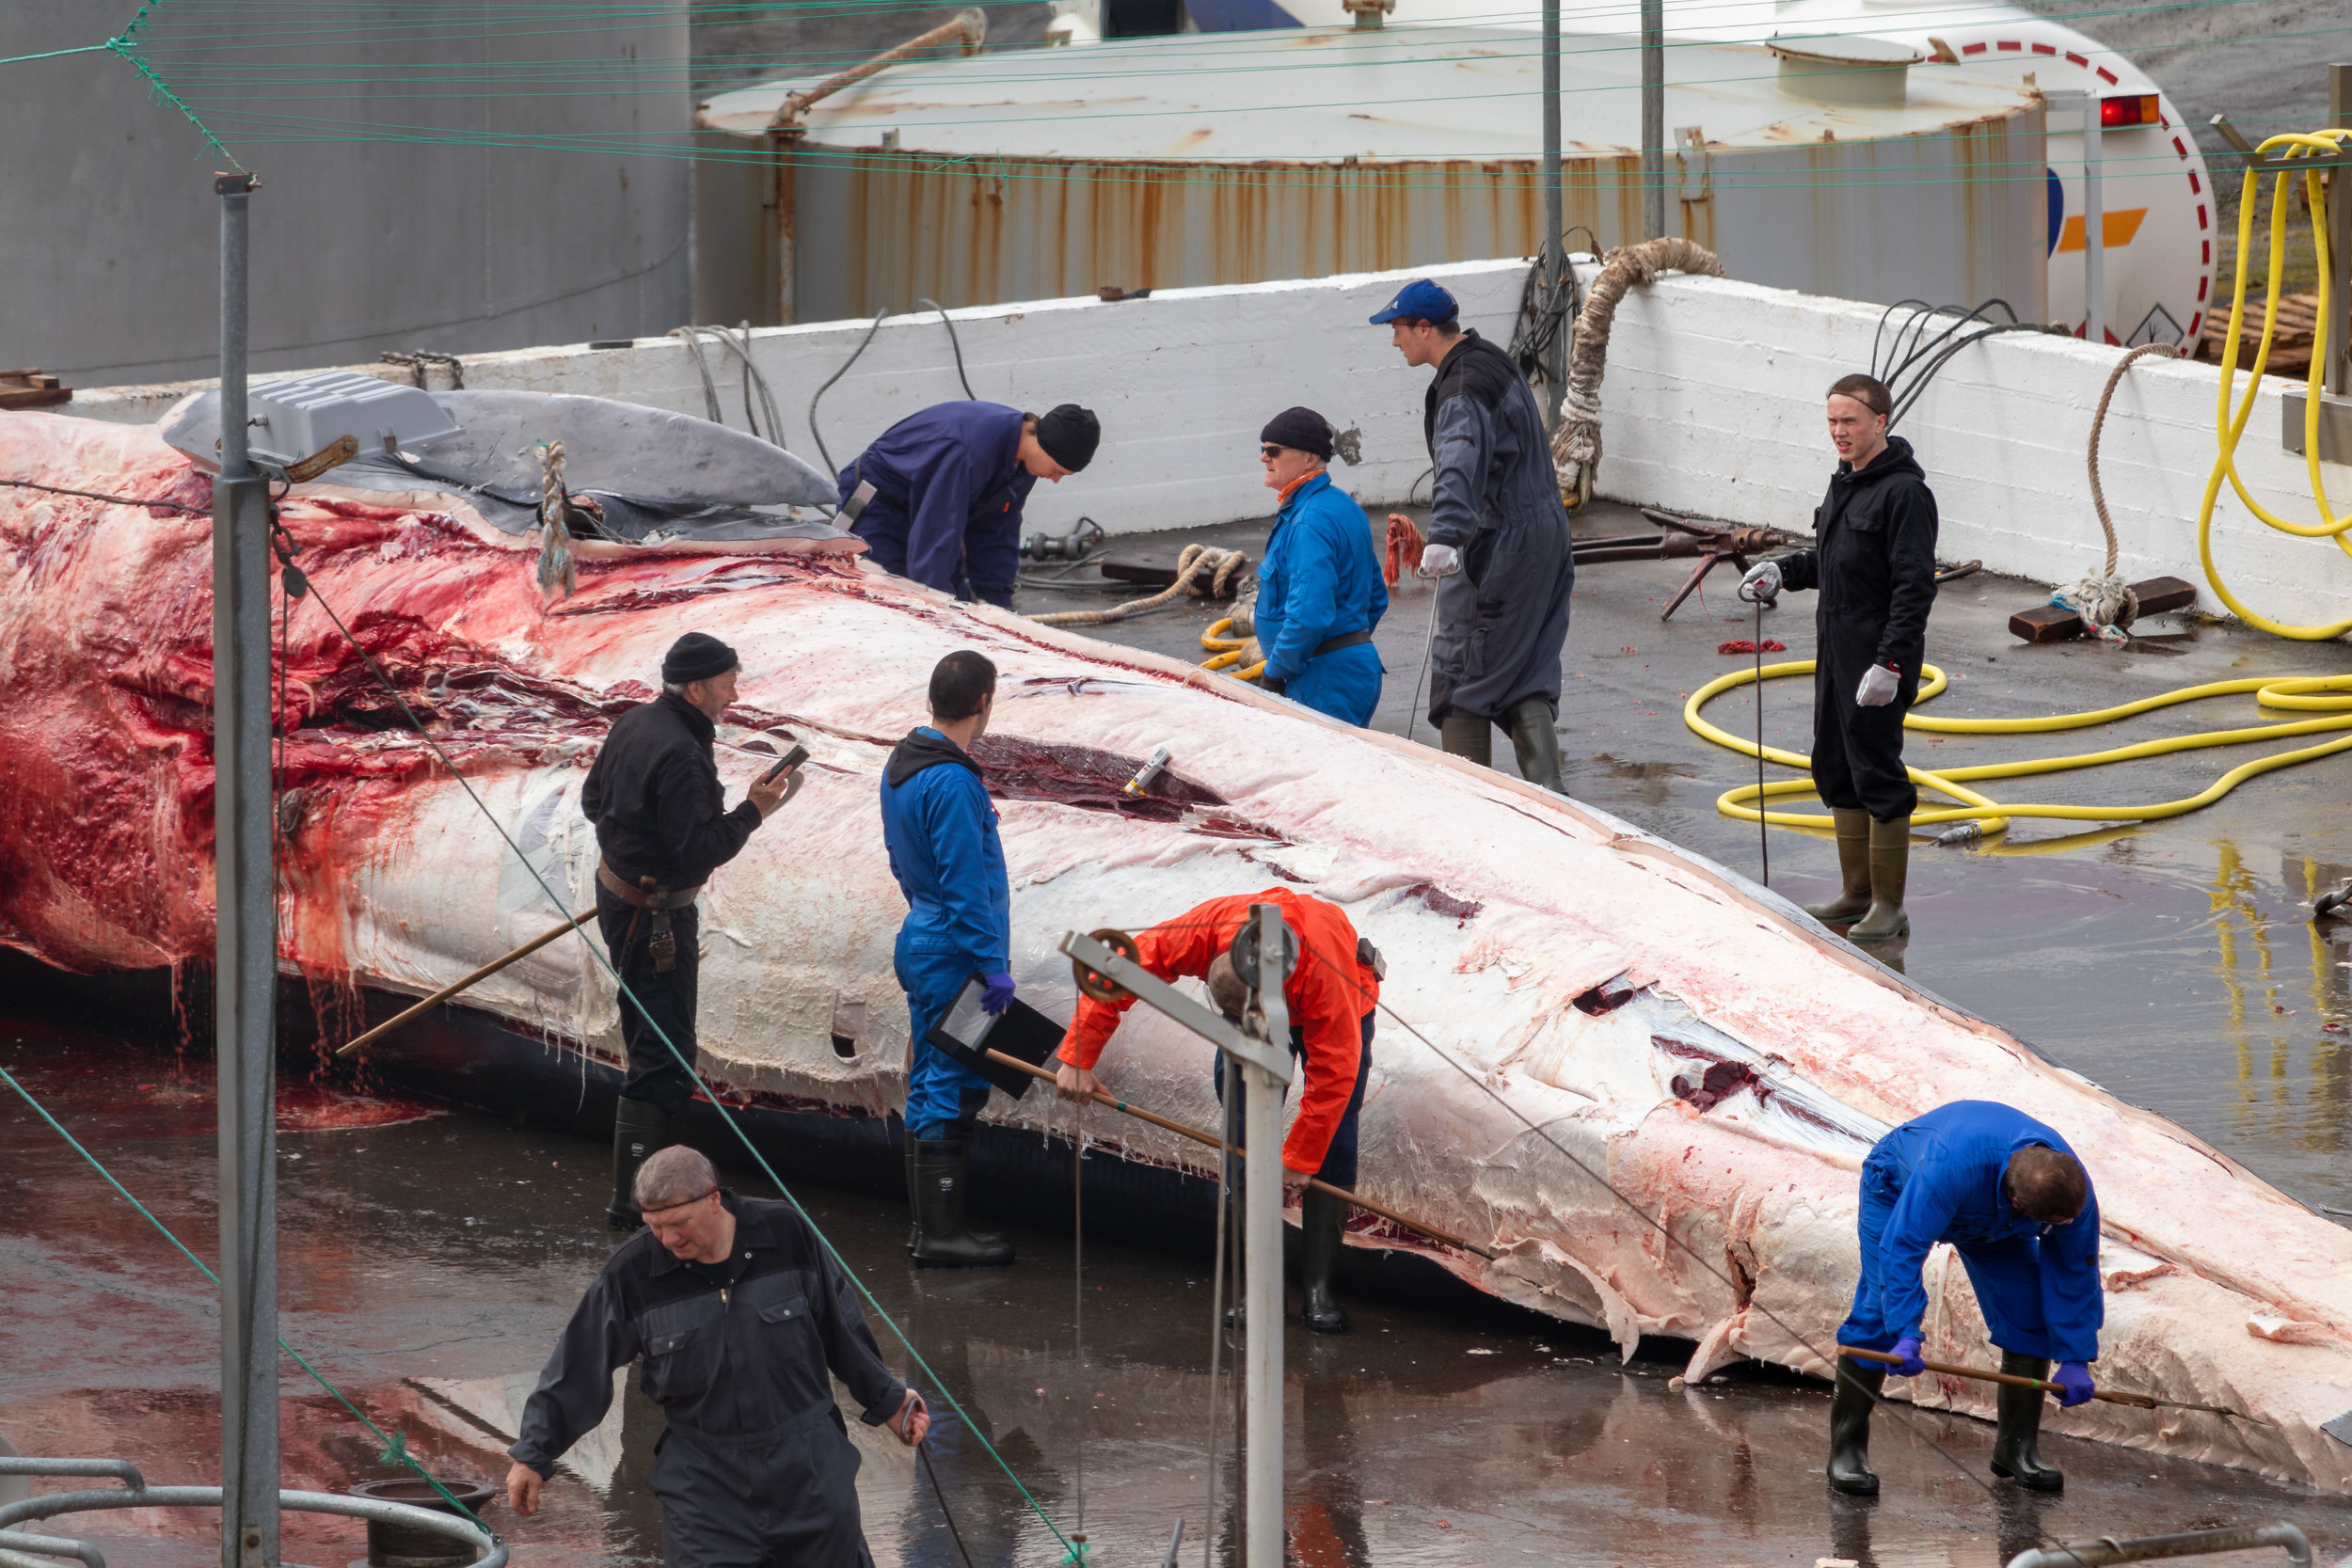 After a couple of minutes, the skin is removed. The vet is taking measurements, perhaps the temperature of the whale, whilst a worker sharpens his blade next to him, ready to start taking the meat.